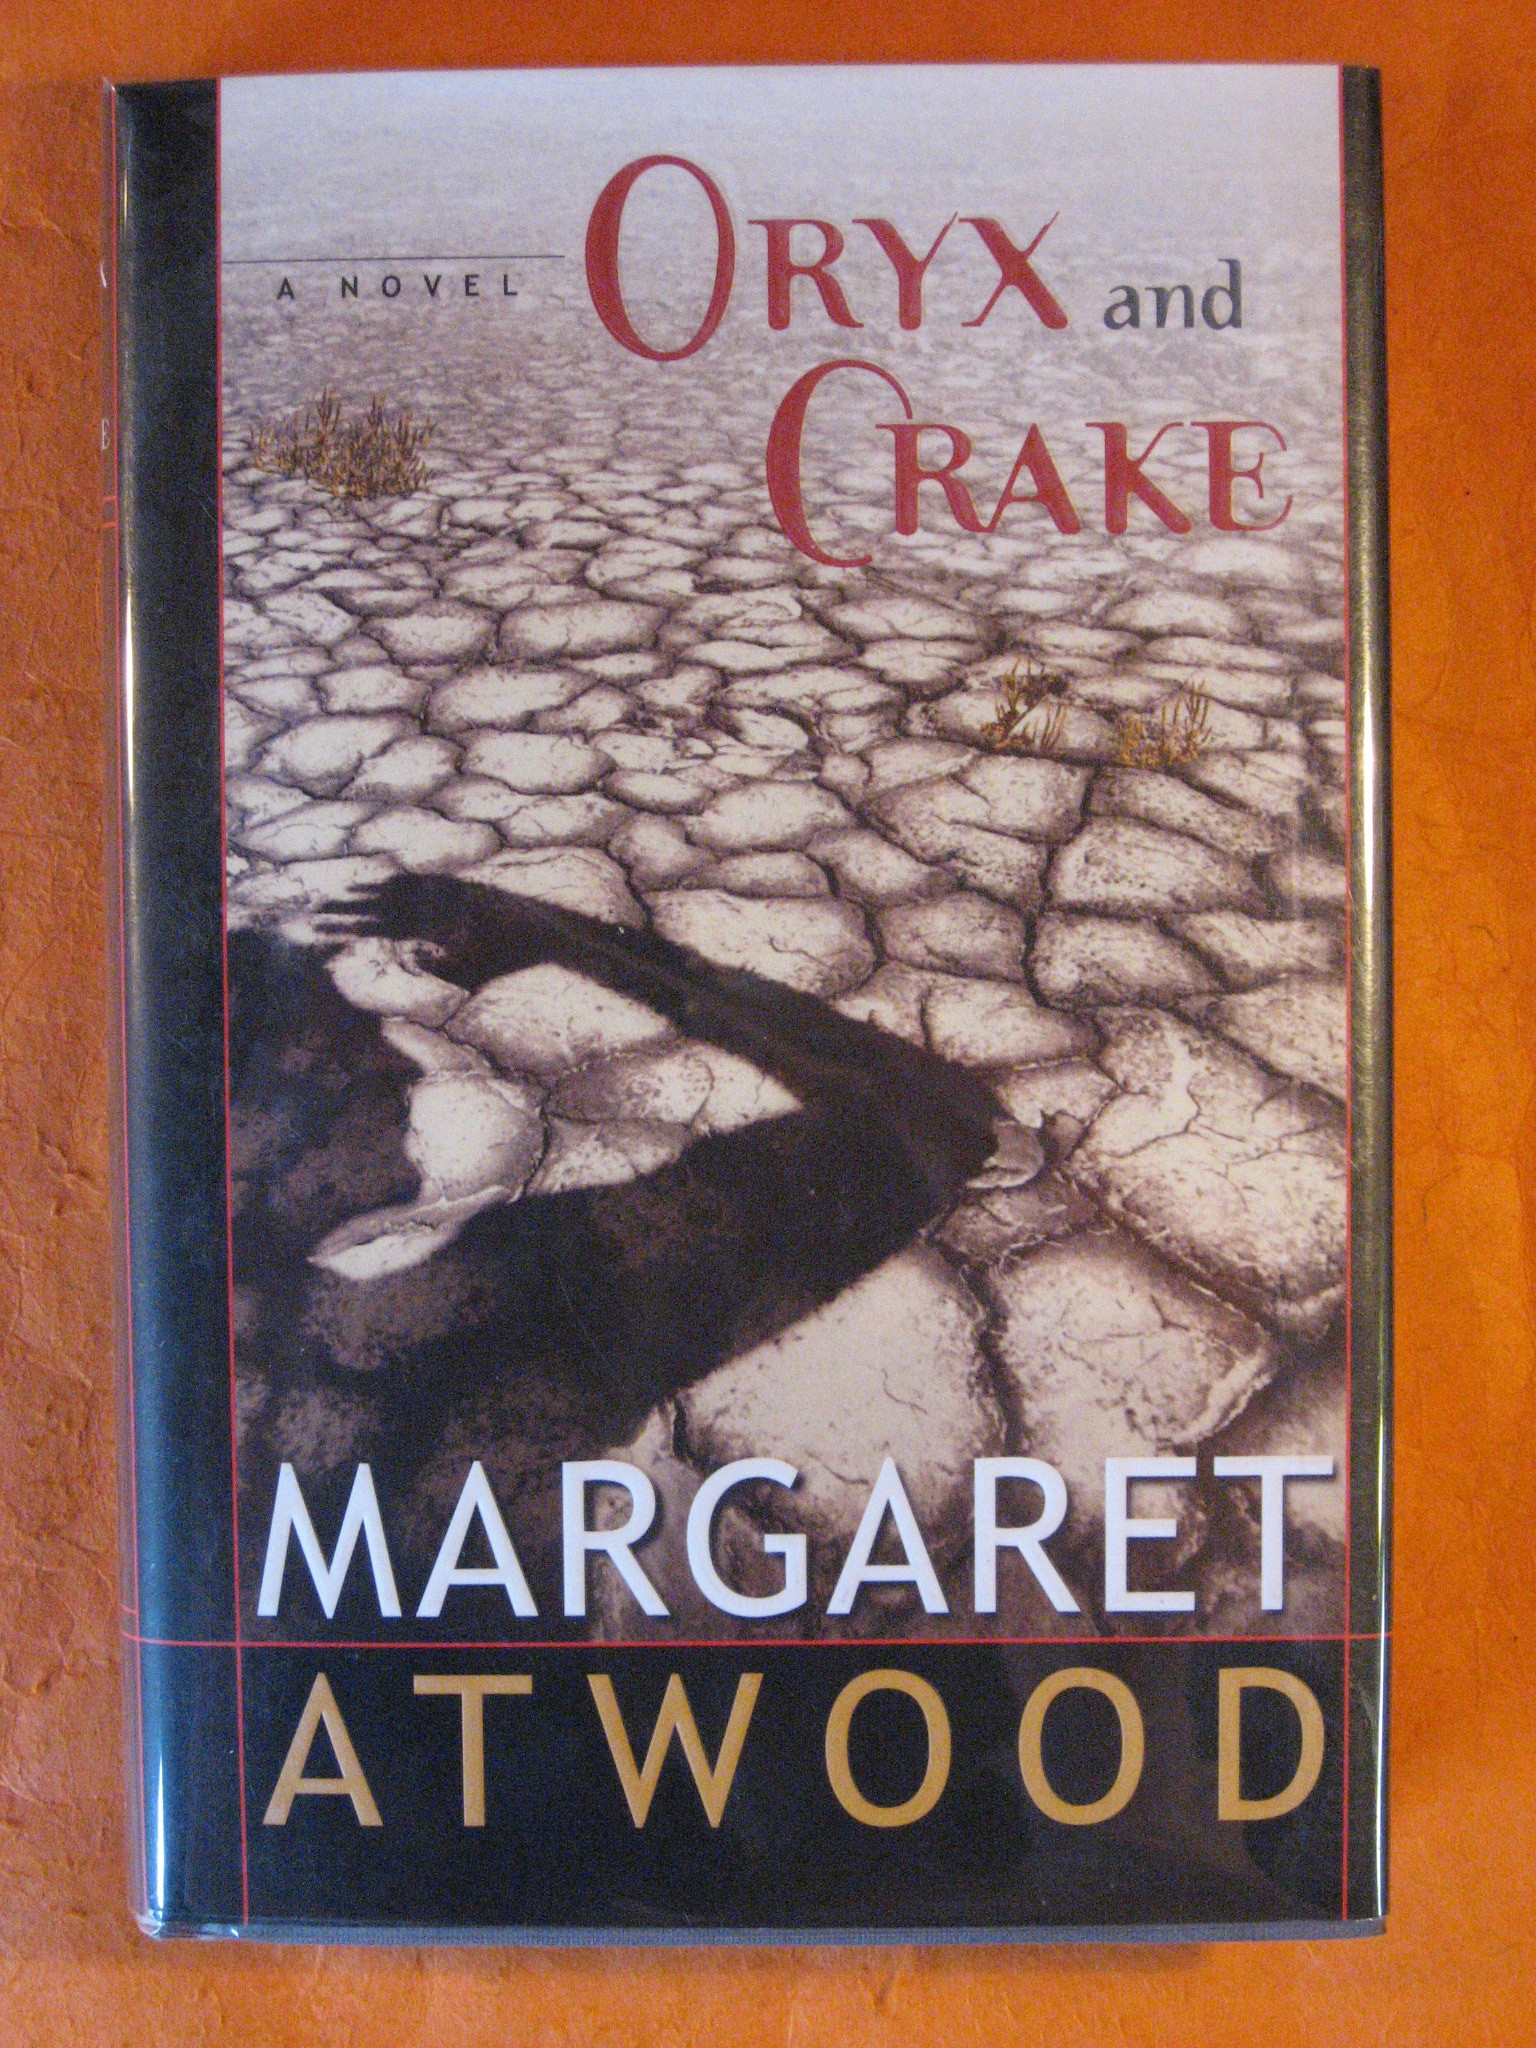 Oryx and Crake, Atwood, Margaret